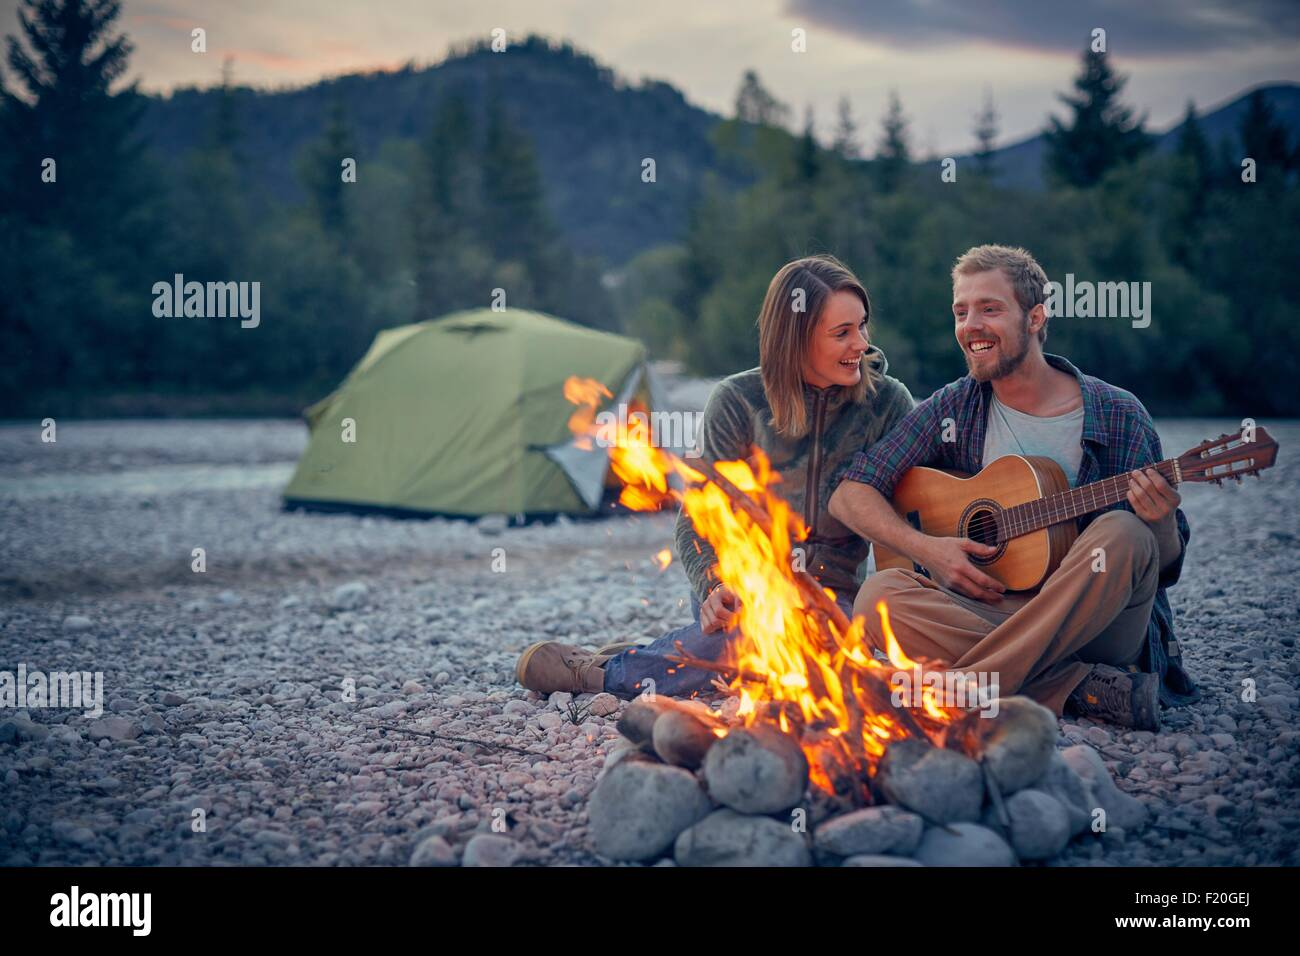 Young couple sitting by campfire playing guitar - Stock Image